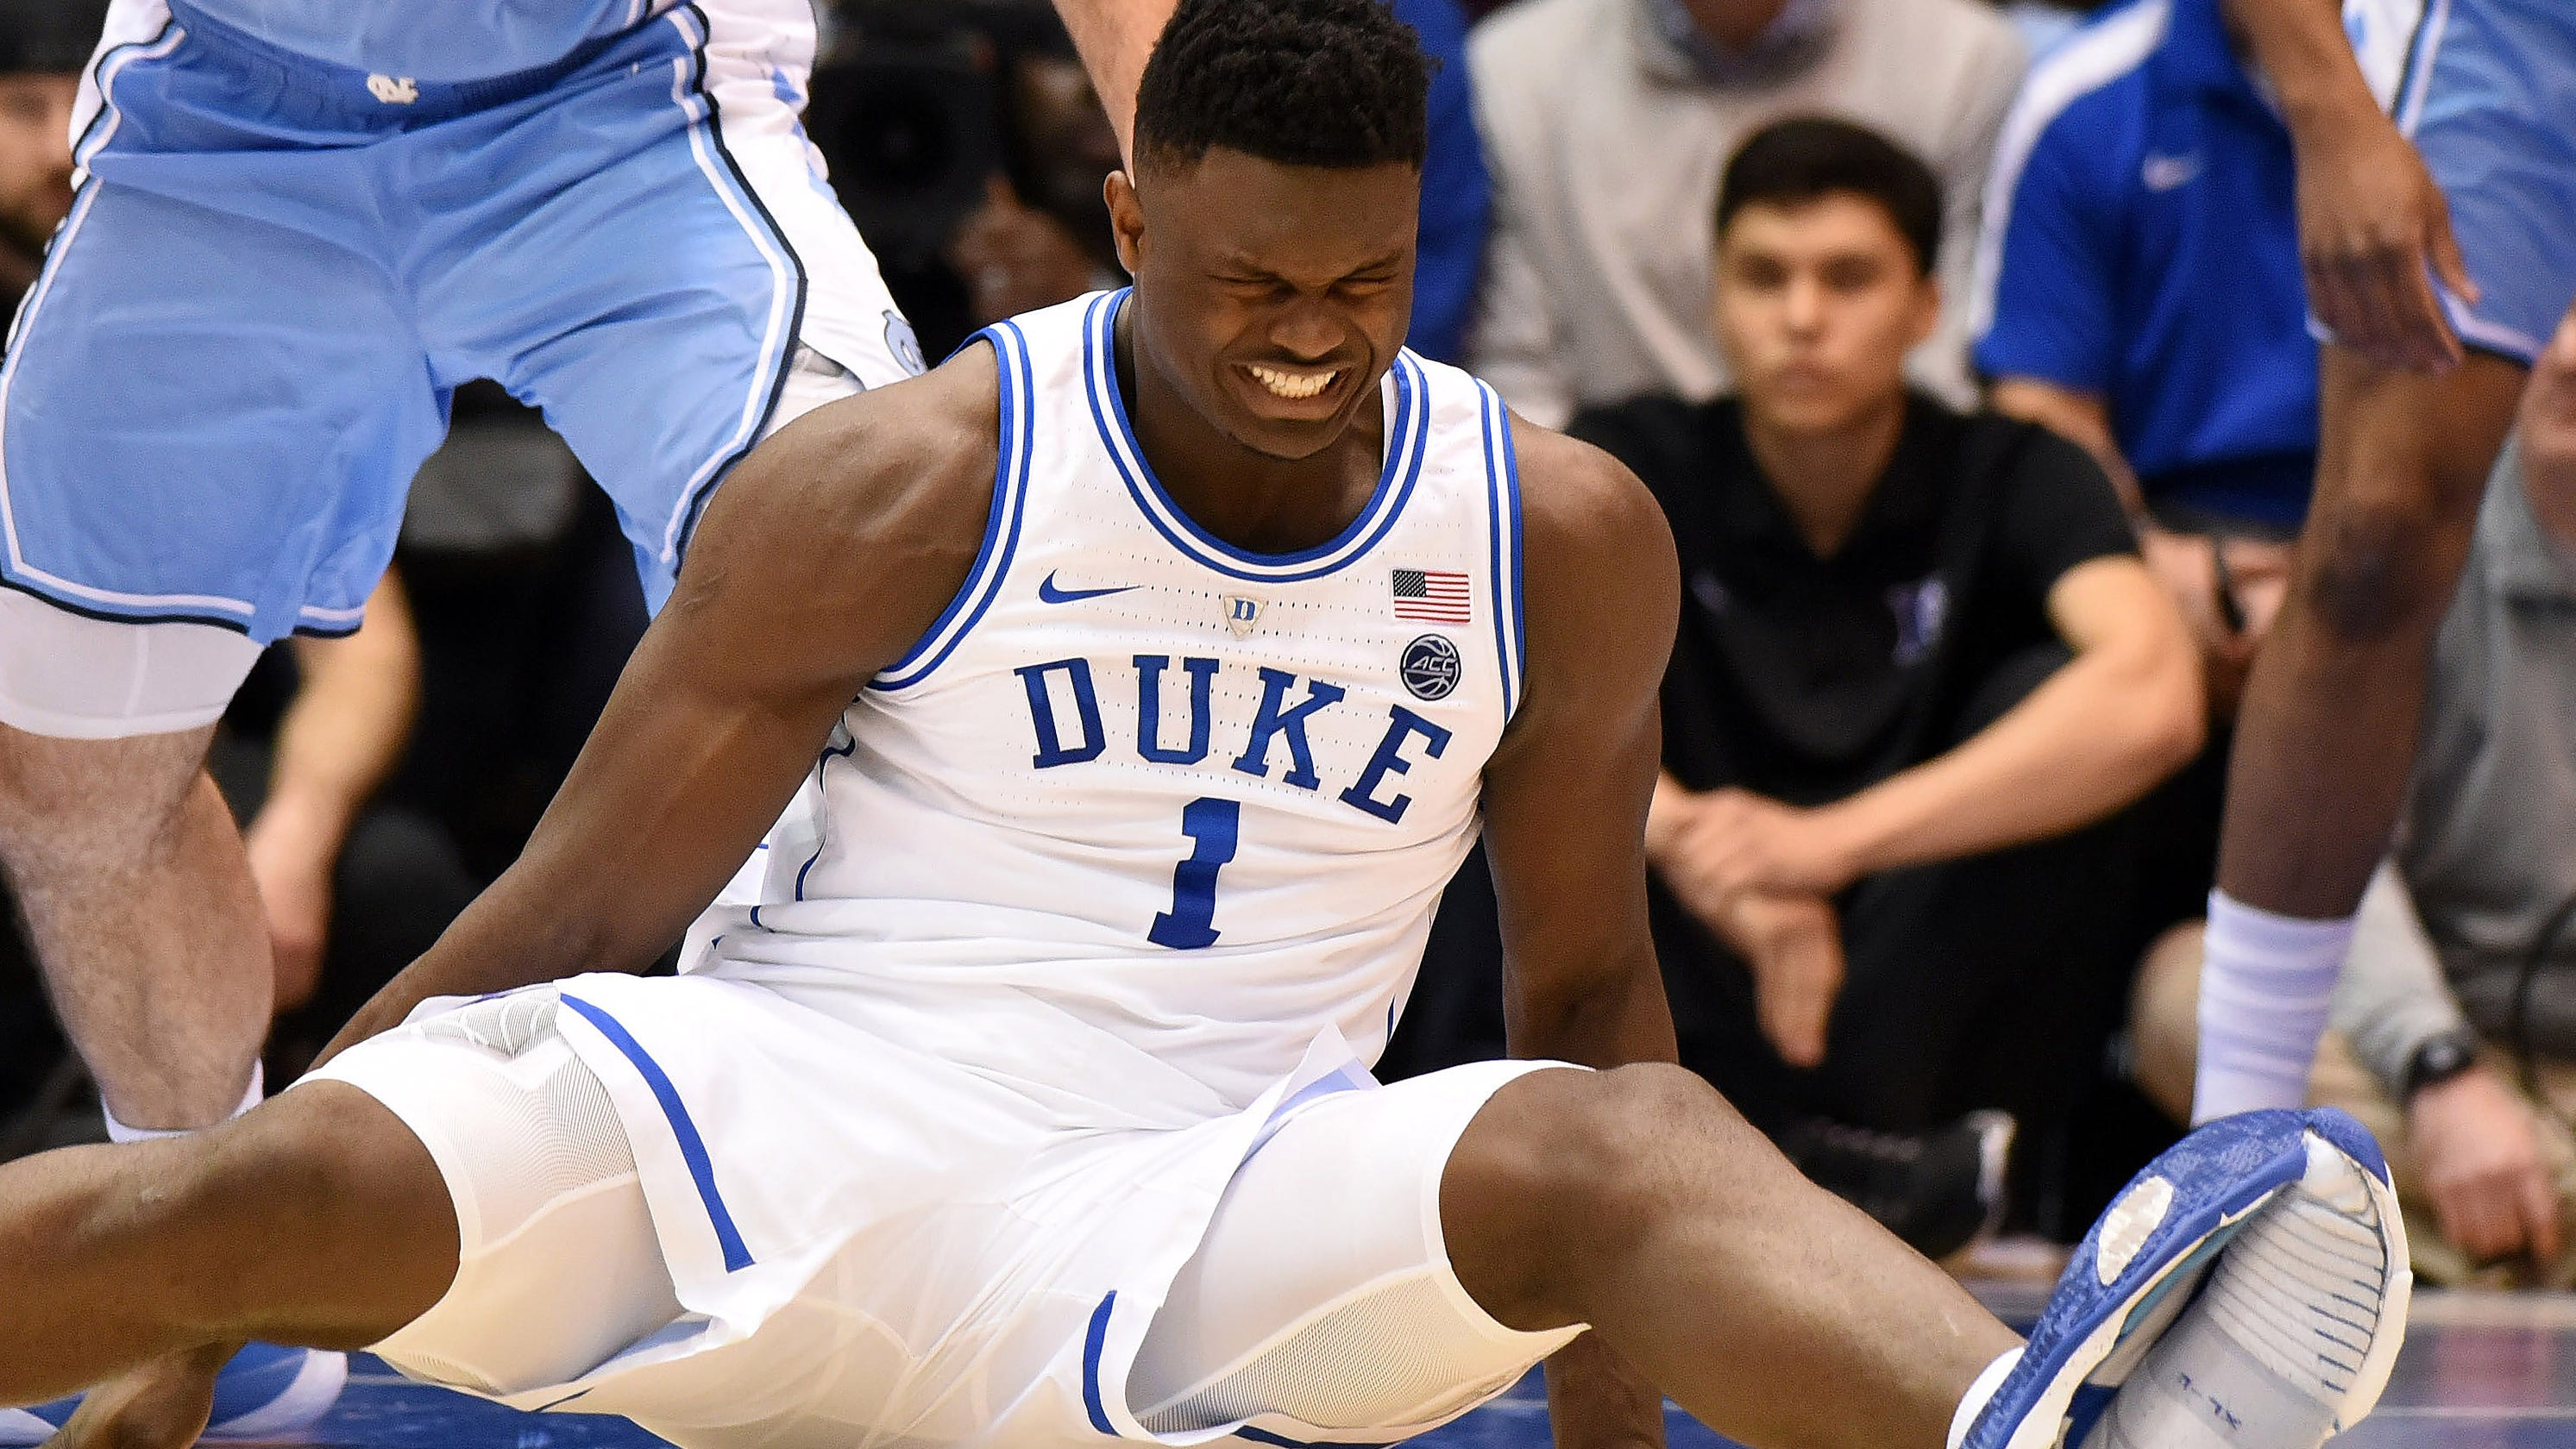 Zion Williamson injury reminds us the NCAA is a farce